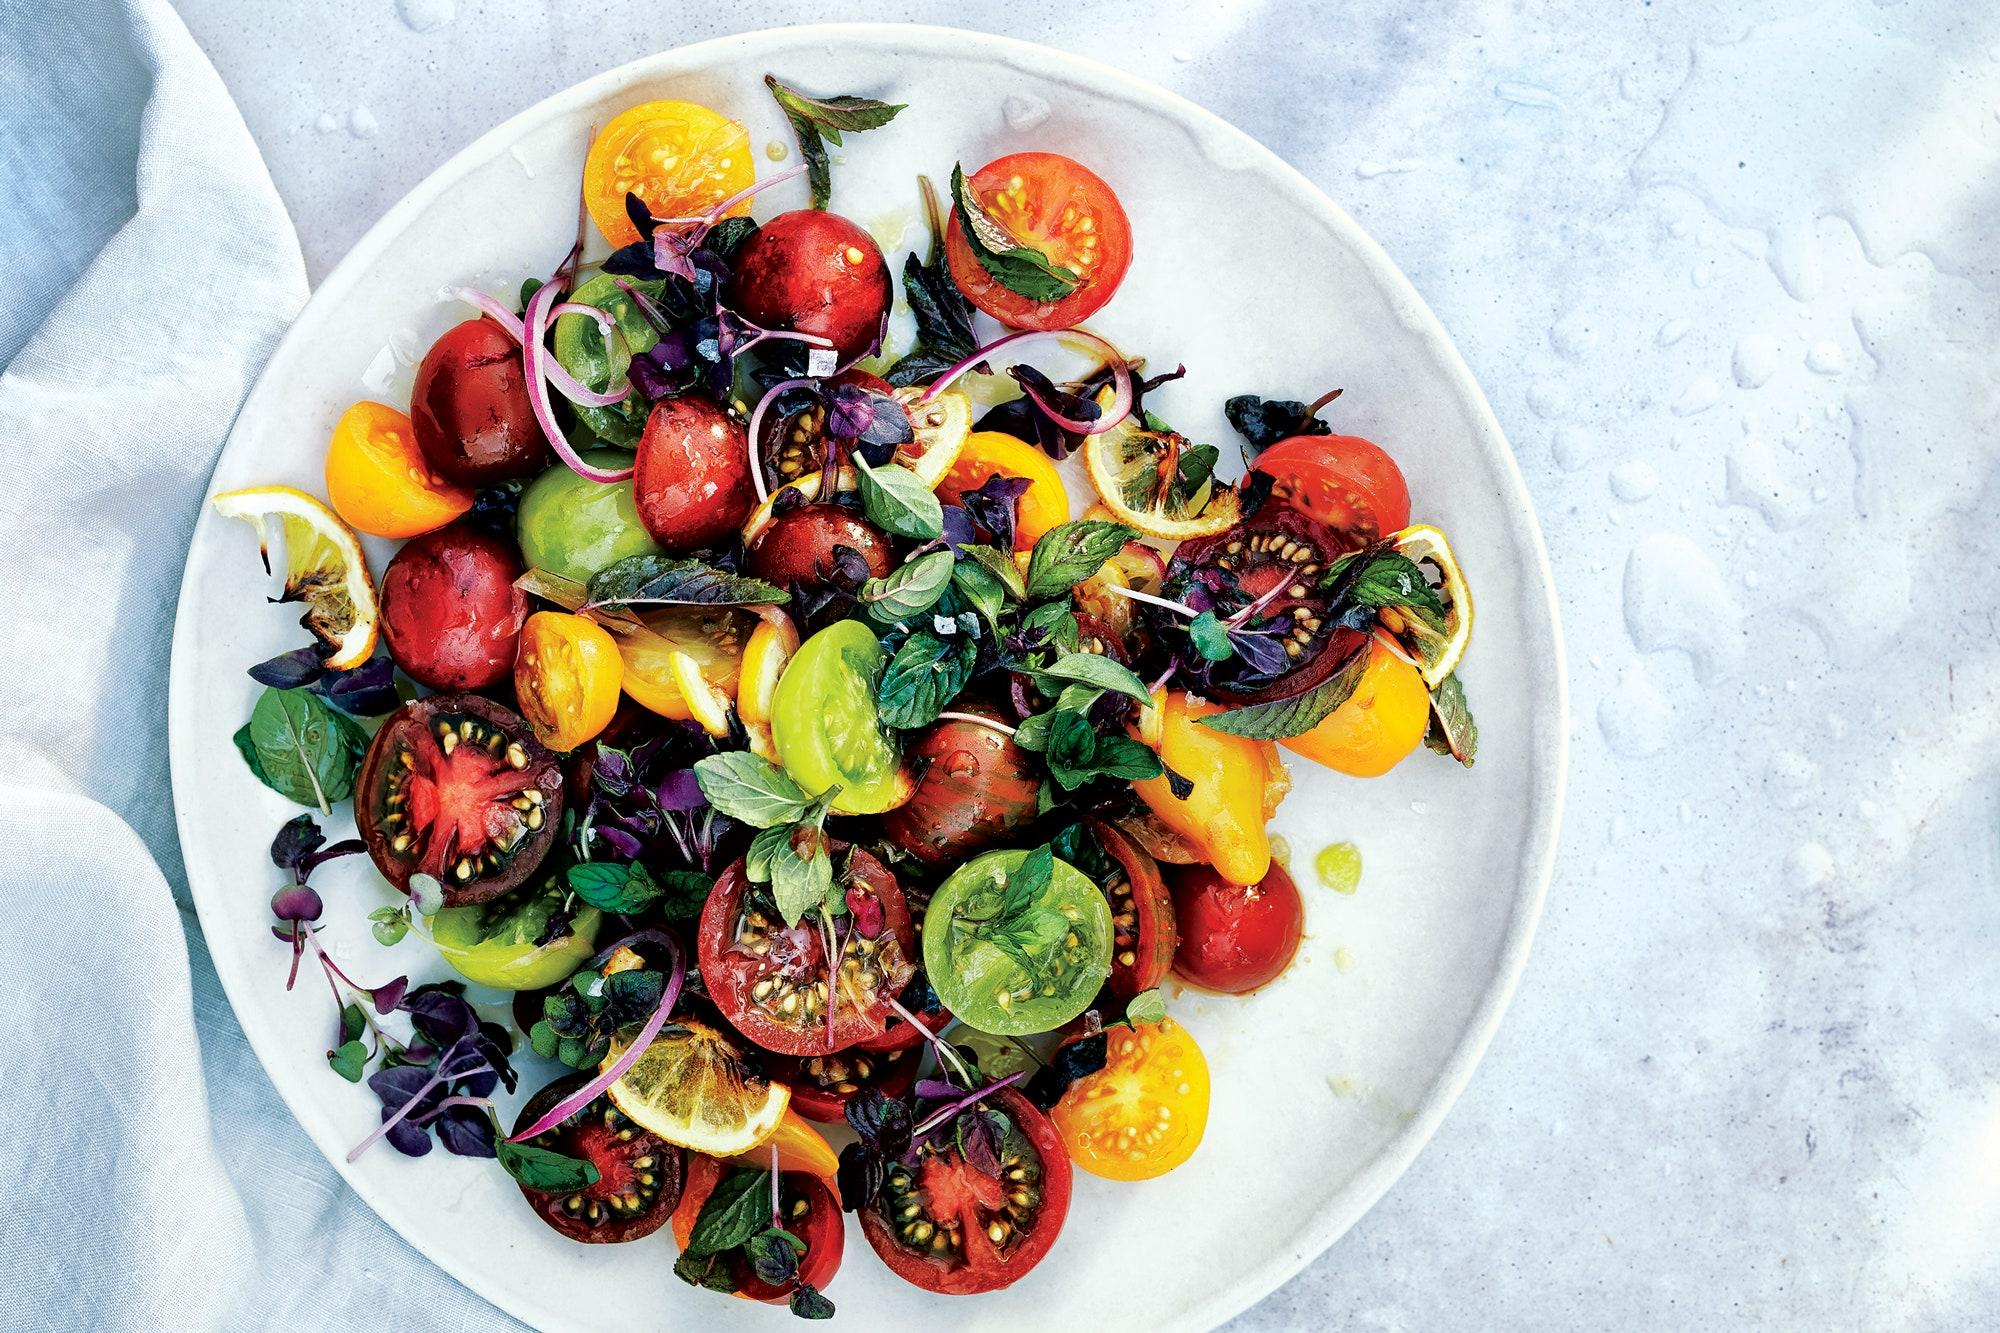 8 Best Tomato Recipes for the Flavors You've Waited All Year to Taste